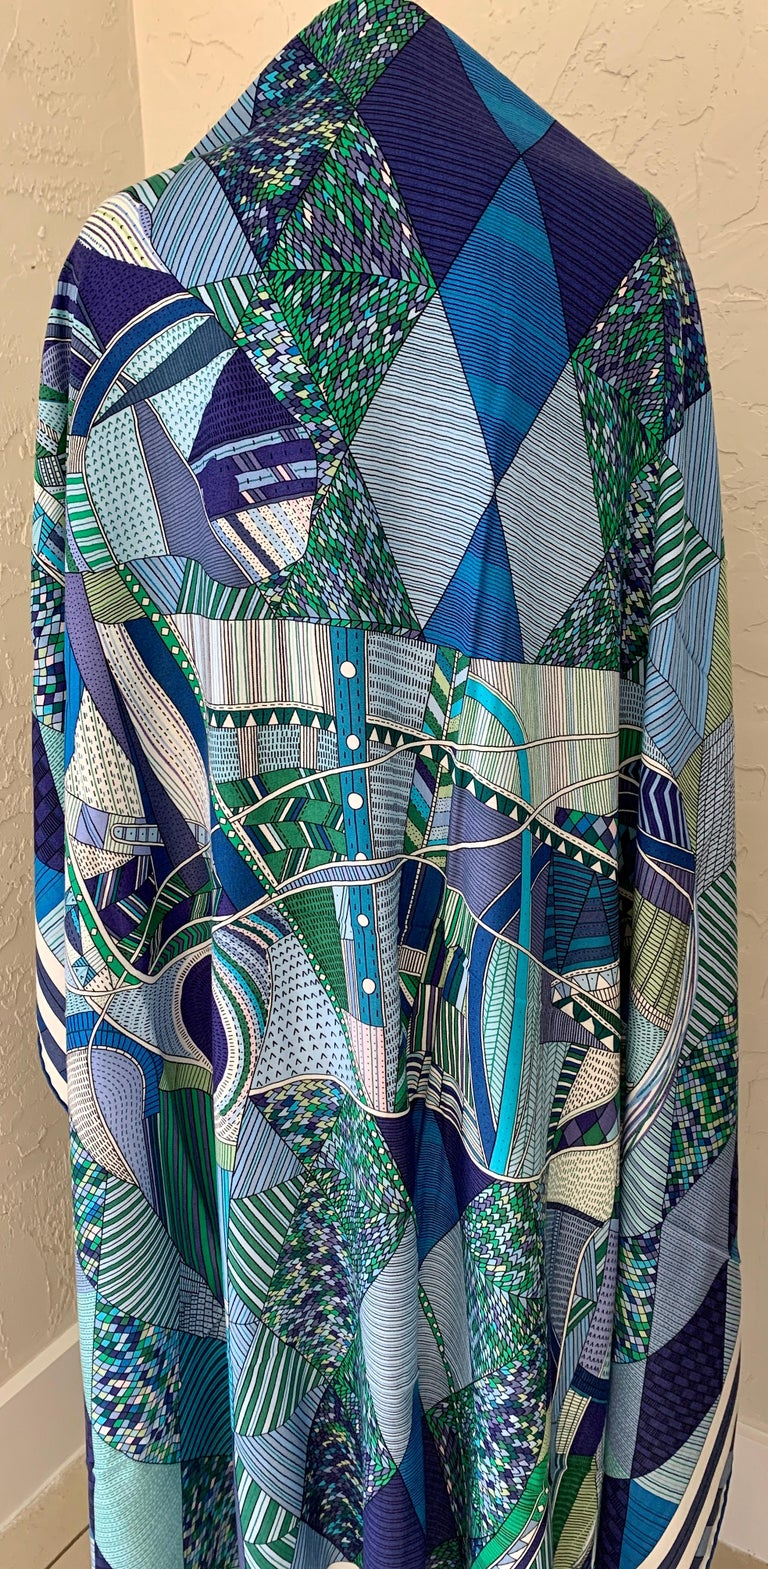 Women's or Men's Hermes Patchwork Horse Cashmere Shawl 140 Nigel Peake New Turquoise Green For Sale